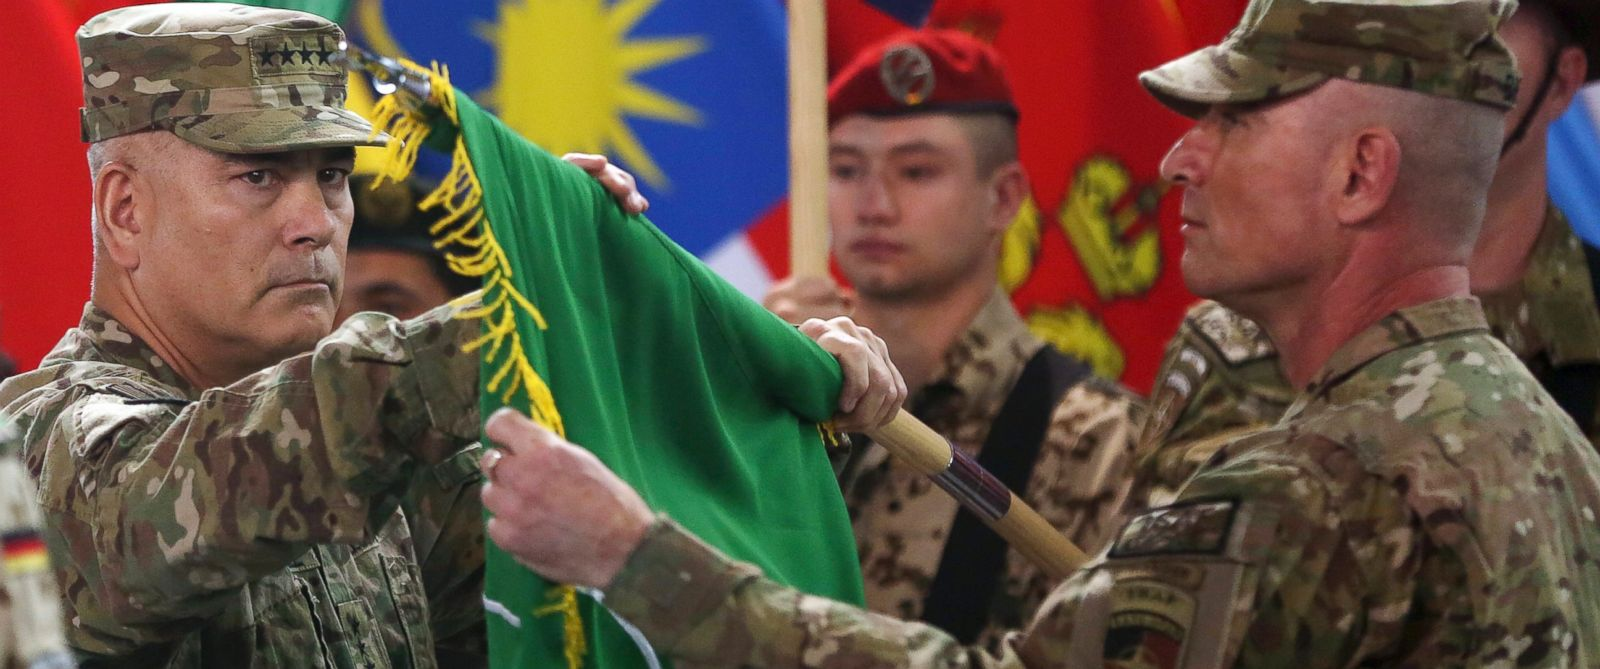 """PHOTO: Commander of the International Security Assistance Force (ISAF), Gen. John Campbell, left, and Command Sgt. Maj. Delbert Byers open the """"Resolute Support"""" flag during a ceremony at the ISAF headquarters in Kabul, Afghanistan, Dec. 28, 2014."""